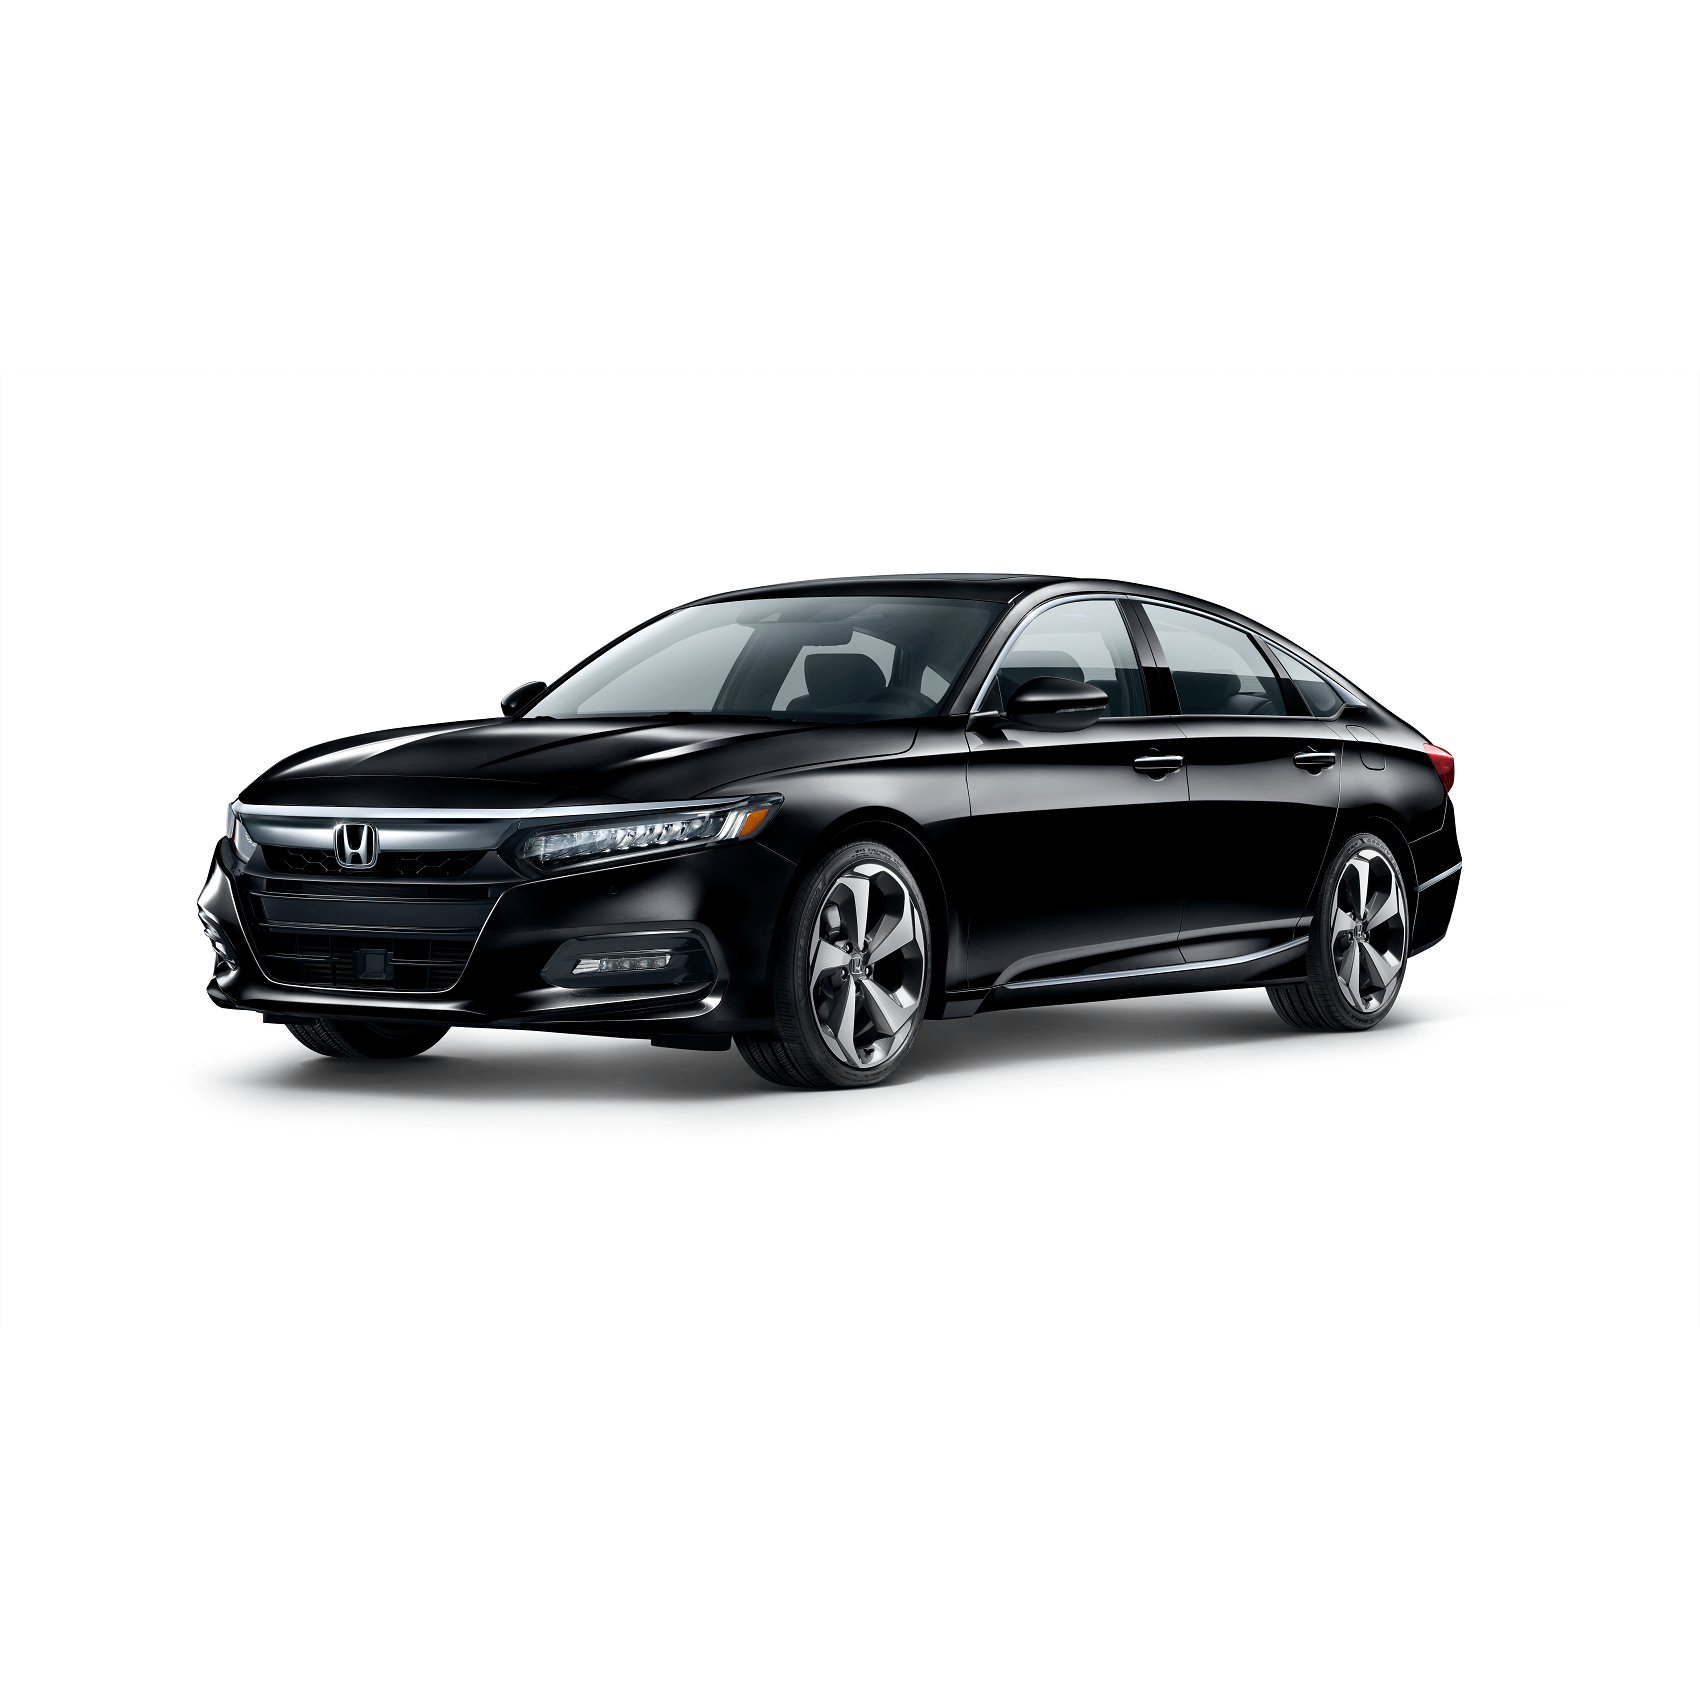 Honda Accord vs Kia Optima West Covina